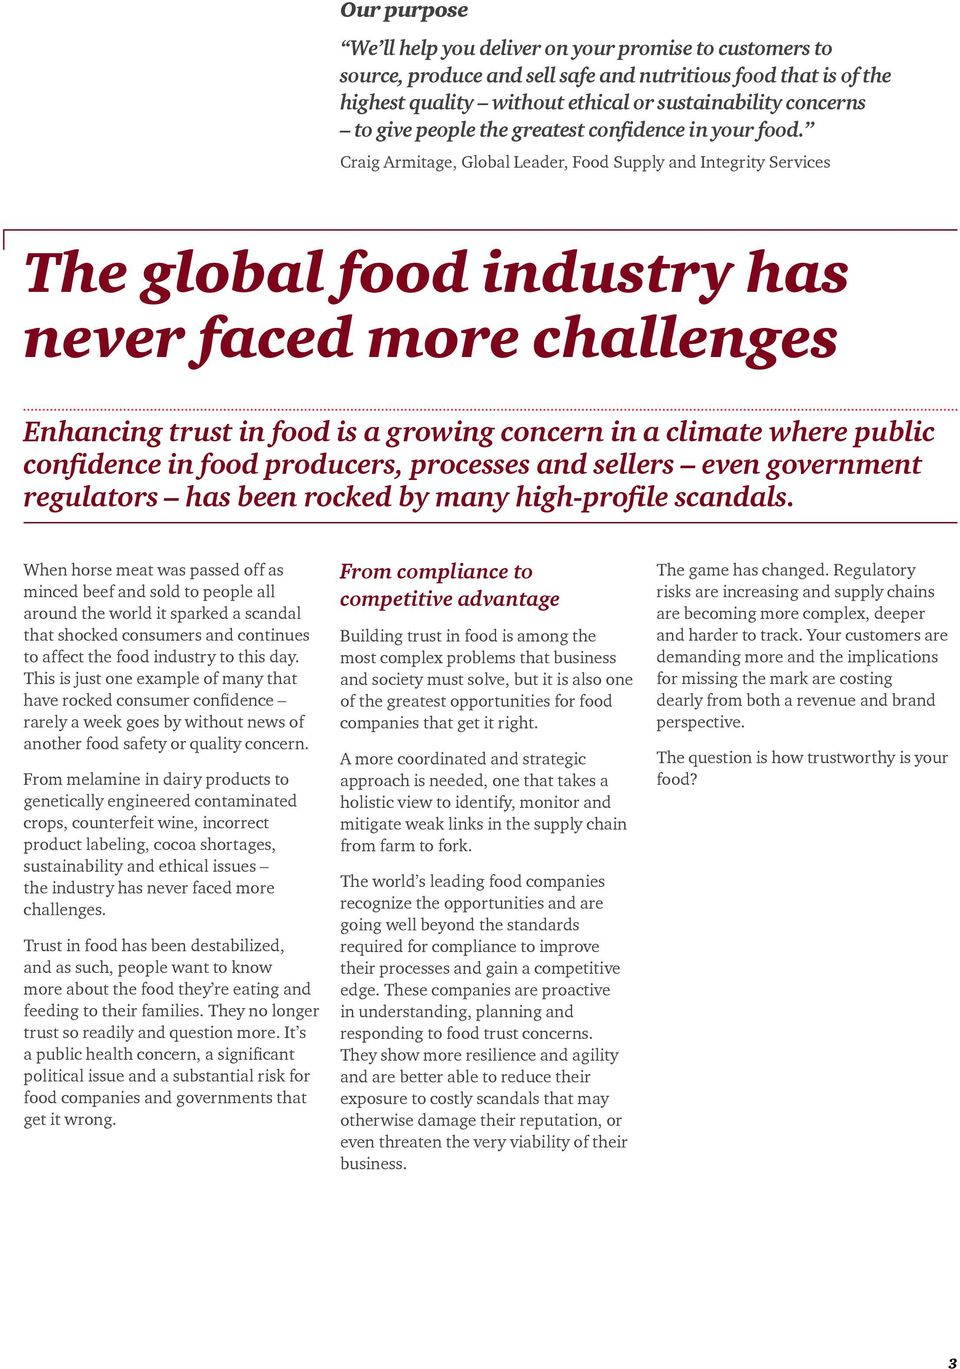 Craig Armitage, Global Leader, Food Supply and Integrity Services The global food industry has never faced more challenges Enhancing trust in food is a growing concern in a climate where public